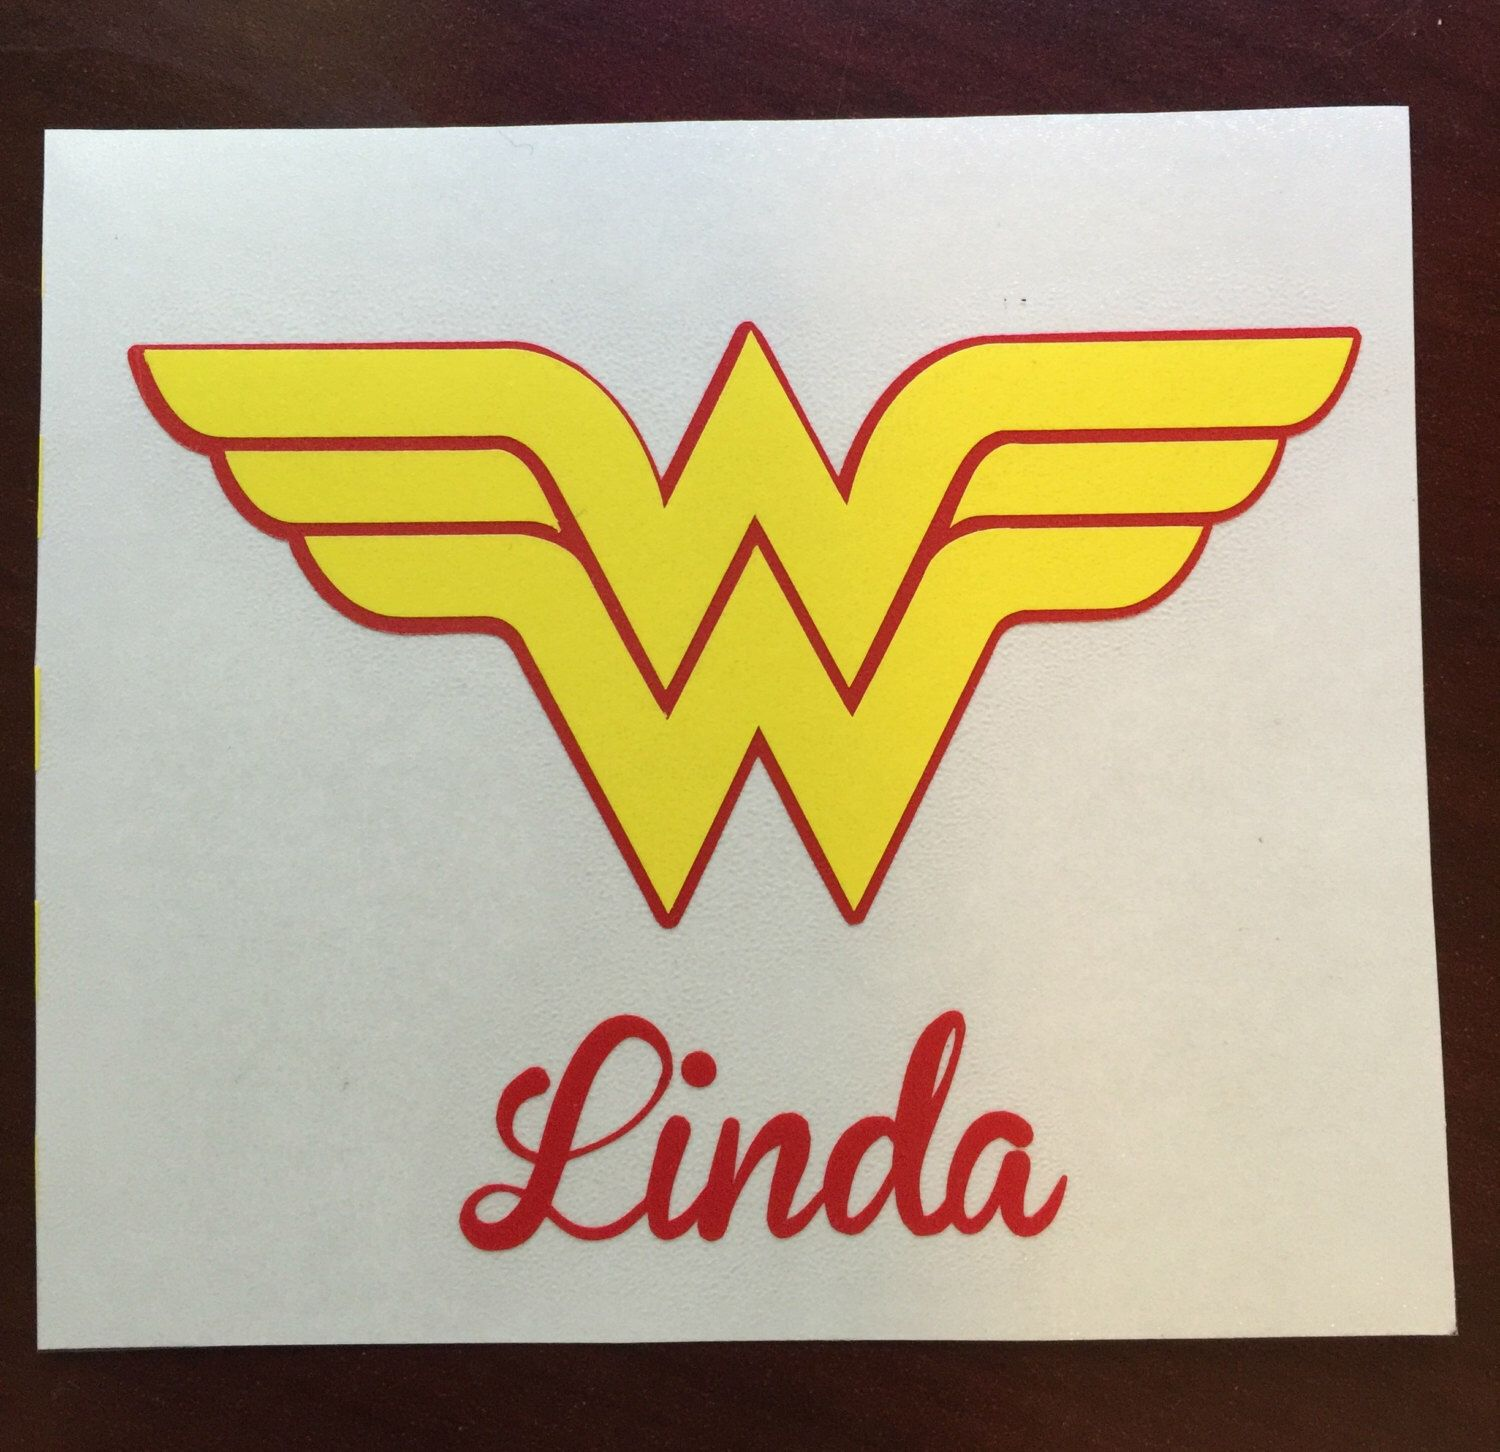 Wonder Woman Decal Sticker For Yeti Cup Car Decal Laptop Any Smooth Surface Application Yeti Cup Stickers Cup Decal Vinyl Crafts [ 1452 x 1500 Pixel ]